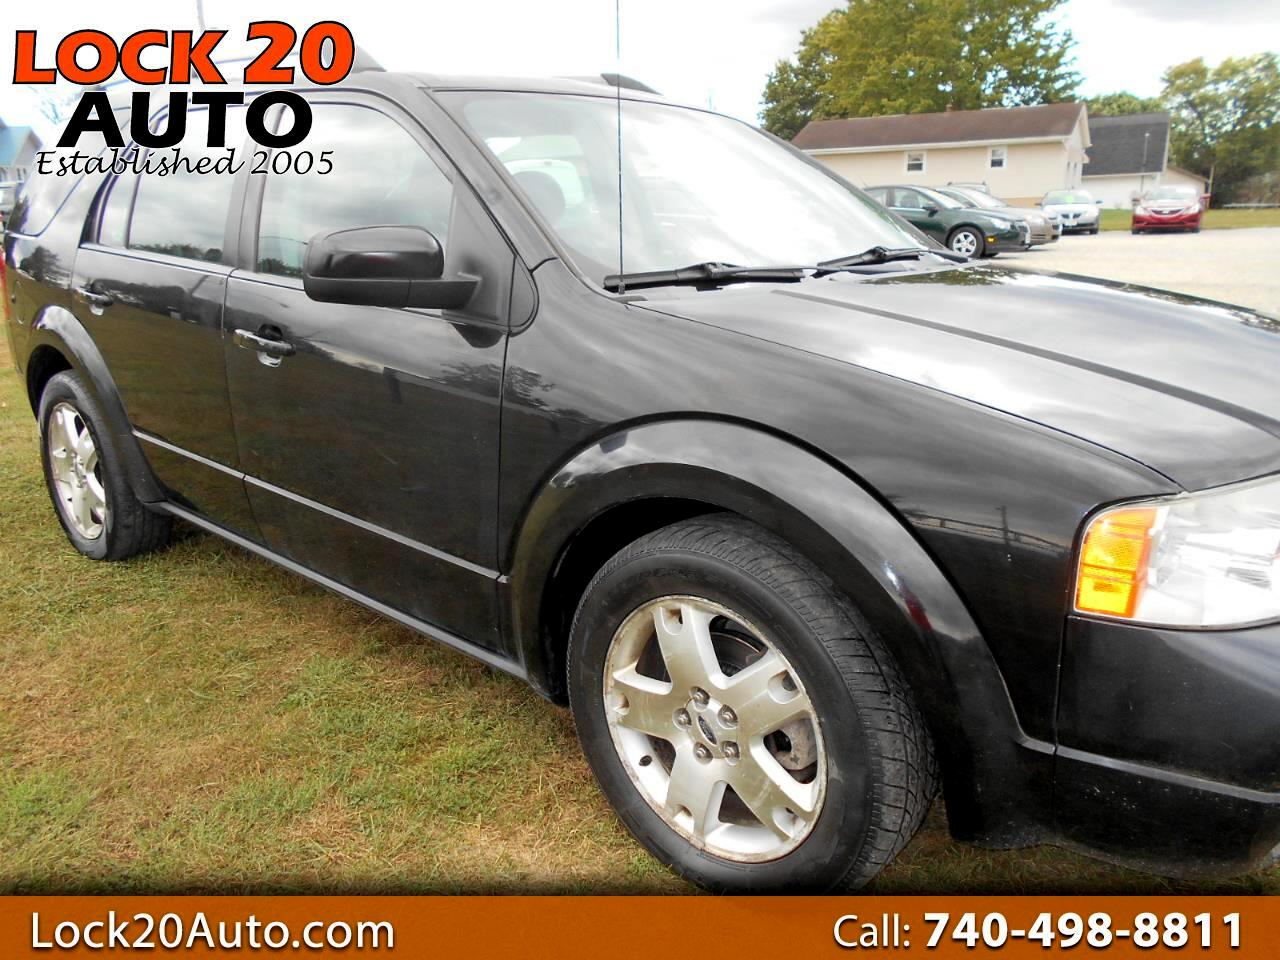 2005 Ford Freestyle 4dr Wgn Limited AWD